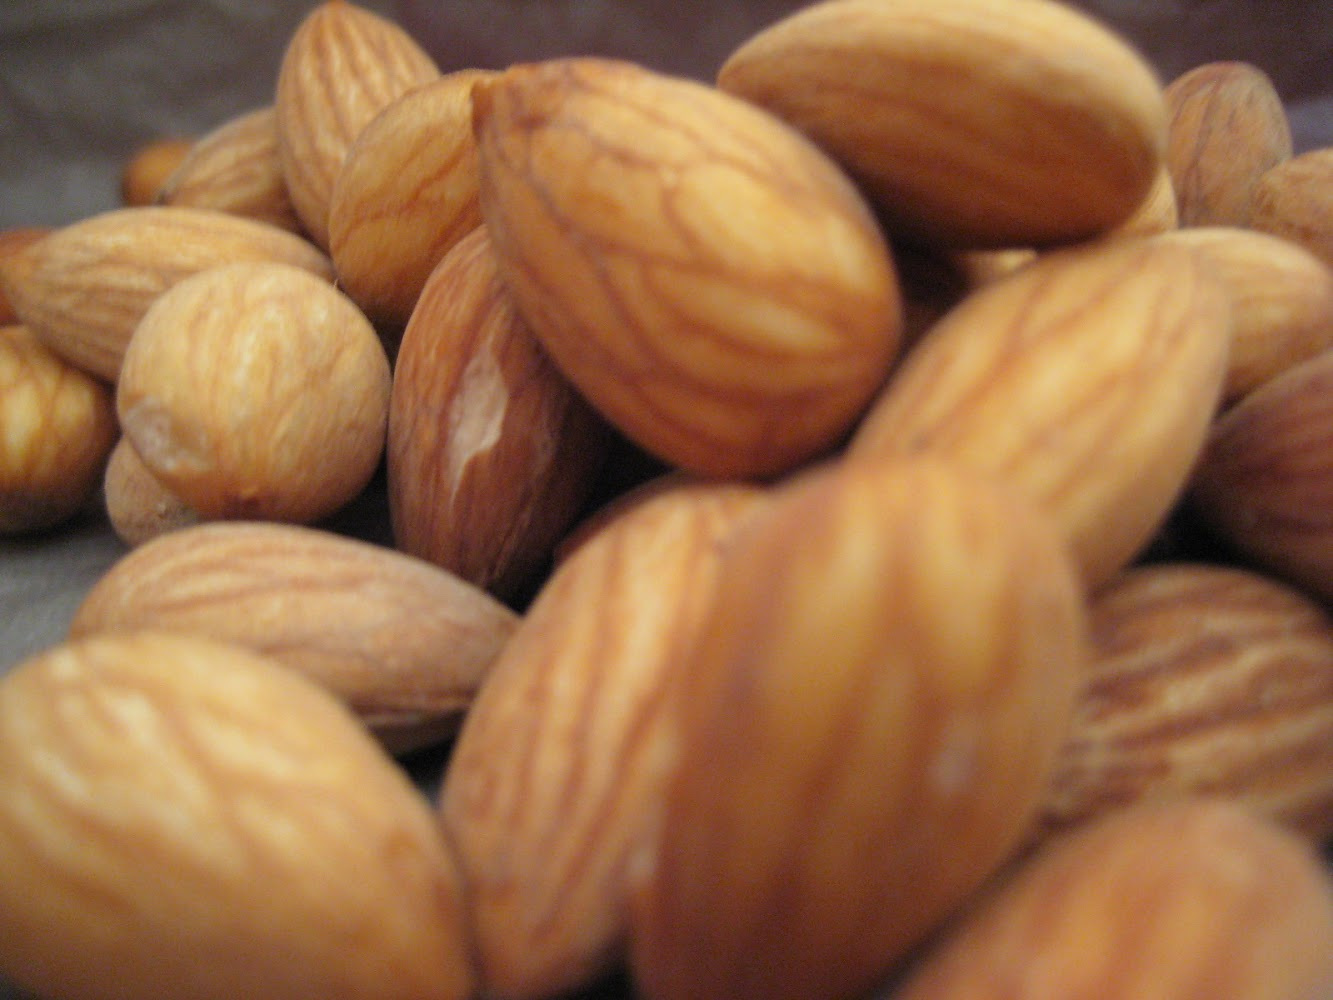 Where in the World are Raw Almonds?